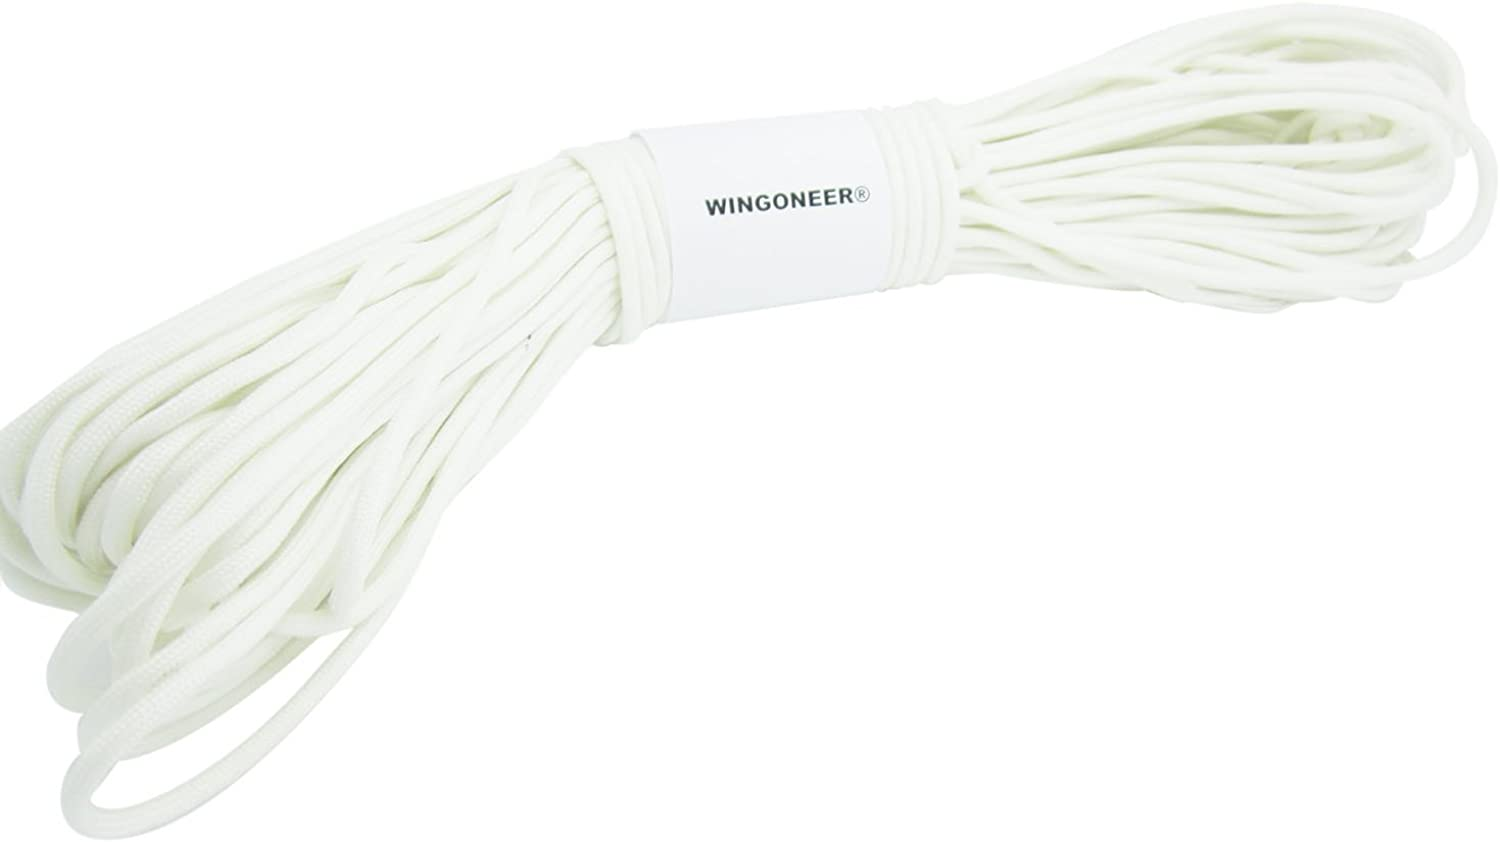 WINGONEER 550 Luminous Glow in the Dark Paracord Mil Spec Type III 7 strand parachute cord White 100 feet